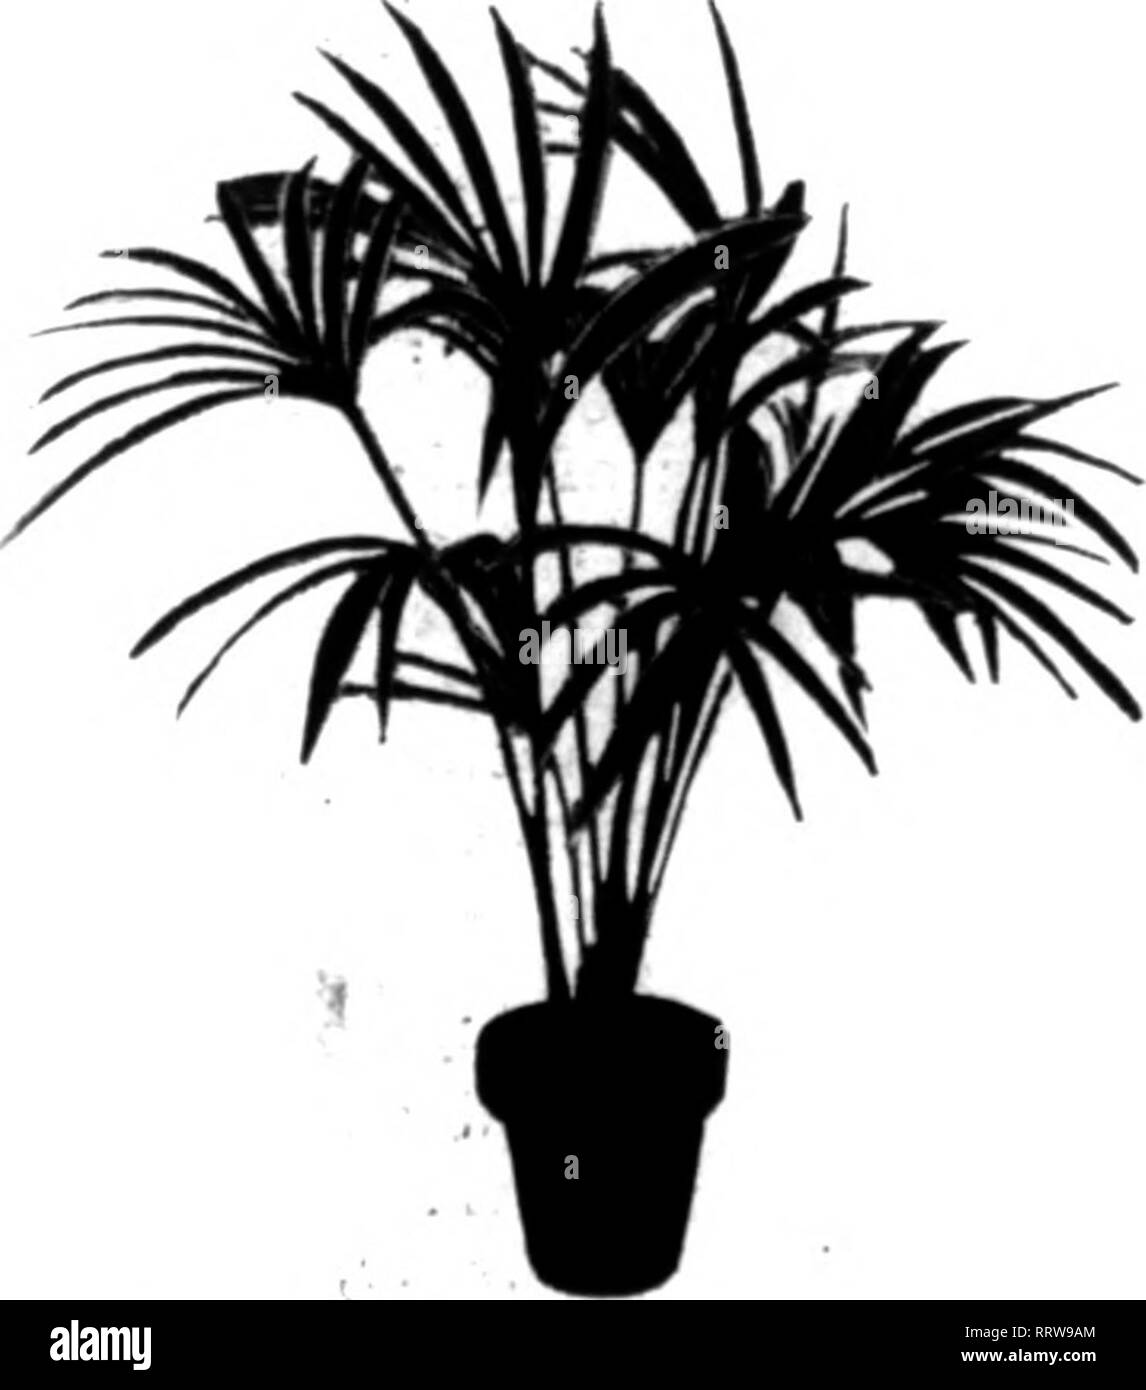 . Florists' review [microform]. Floriculture. KENTIA FORSTKIIIANA .eaves Height Doz. 100 4 Sin. $1.6C 1 SI2.U0 4-5 8-10 in. 2.00 15.00 4-6 14-16 in. 4.60 5-6 16-18 in. Each, .60 ixtra strong Each, .75 5-6 18-24 in. Each, 1.00 5-6 28-32 in. Each, 1.50 6-7 36-40 in. Each, $2.25- 2.60 6-7 44-48 in. Each, 4.00 6-7 60-64 in. Each, 8..TO 6-7 64-68 in. Each, 9.00 6-7 72 in. Each, 1100 7-8 80-84 in. Each, 1200 7-8 84-88 in. Eich. ]5;oo iNA ,^ ^m ^ fcfv 18.(K) >RSTERIANA'S ALL SIZES'FR£a>C;8 FT. ARE STANDARD ^ PLEASED CUSTOMERS REPEAT ORDERS Photogfraphs from present stock were used to make these - Stock Image